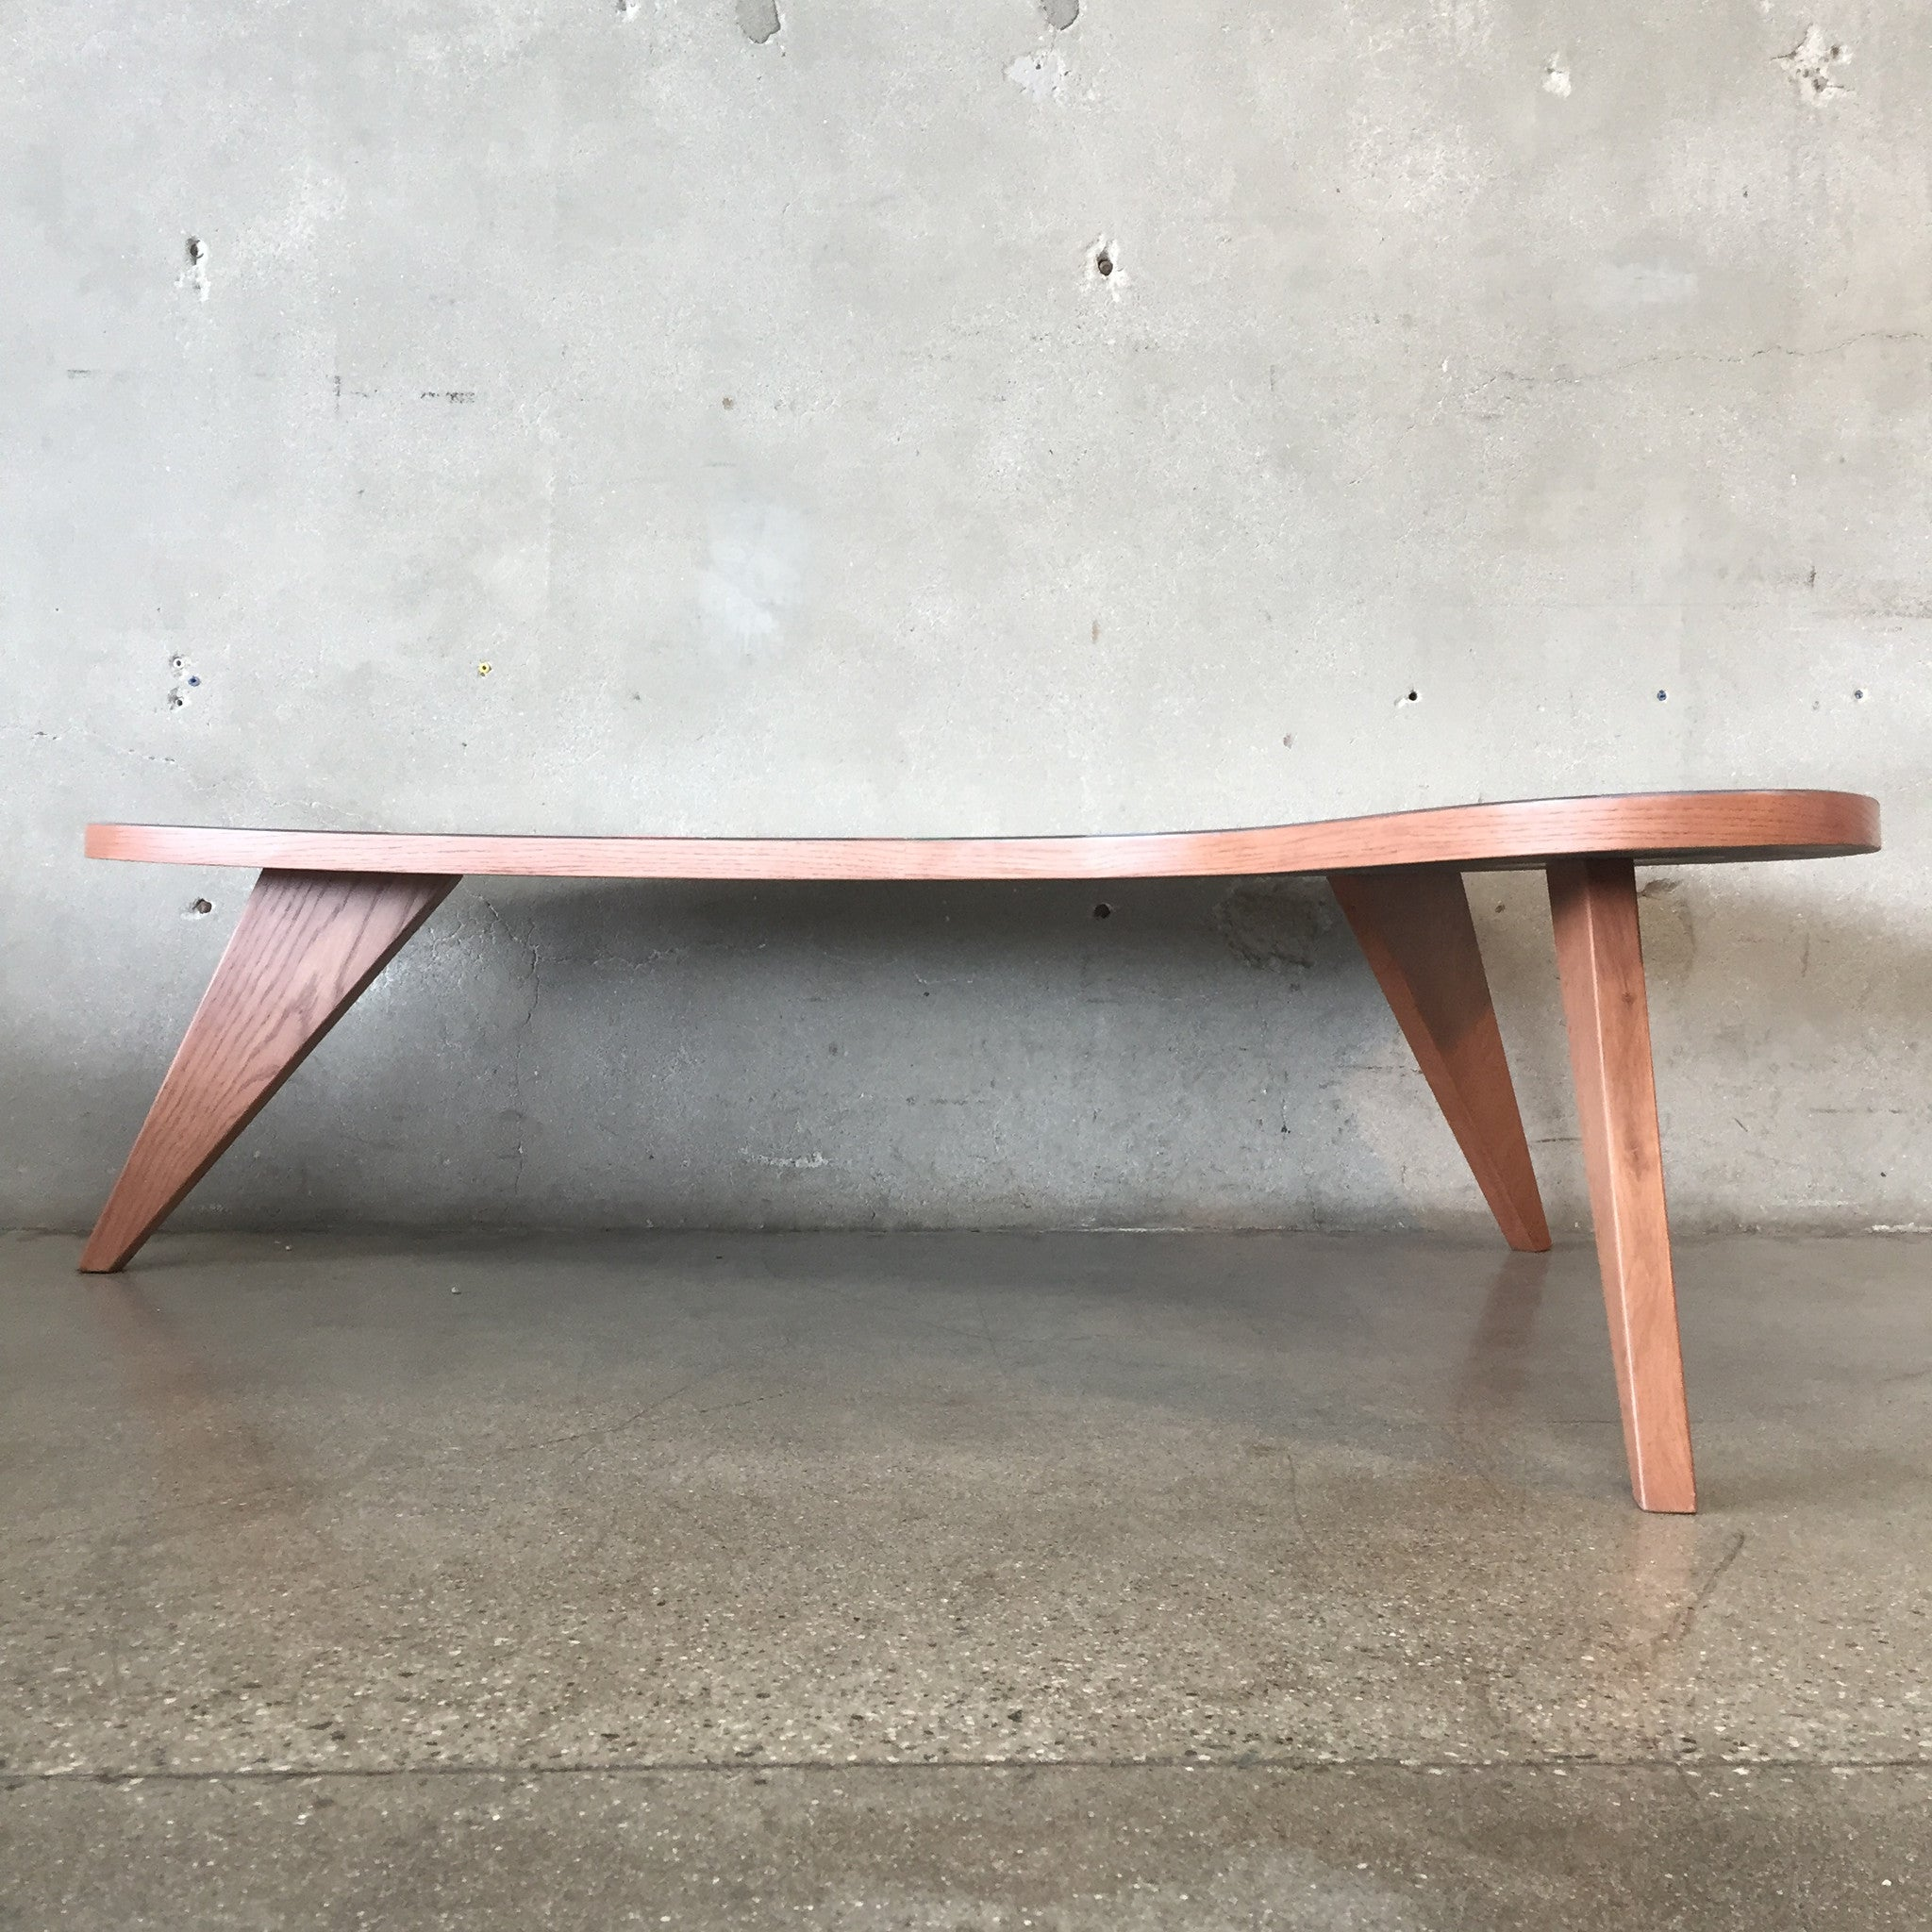 Repurposed Vintage Boomerang Coffee table – UrbanAmericana